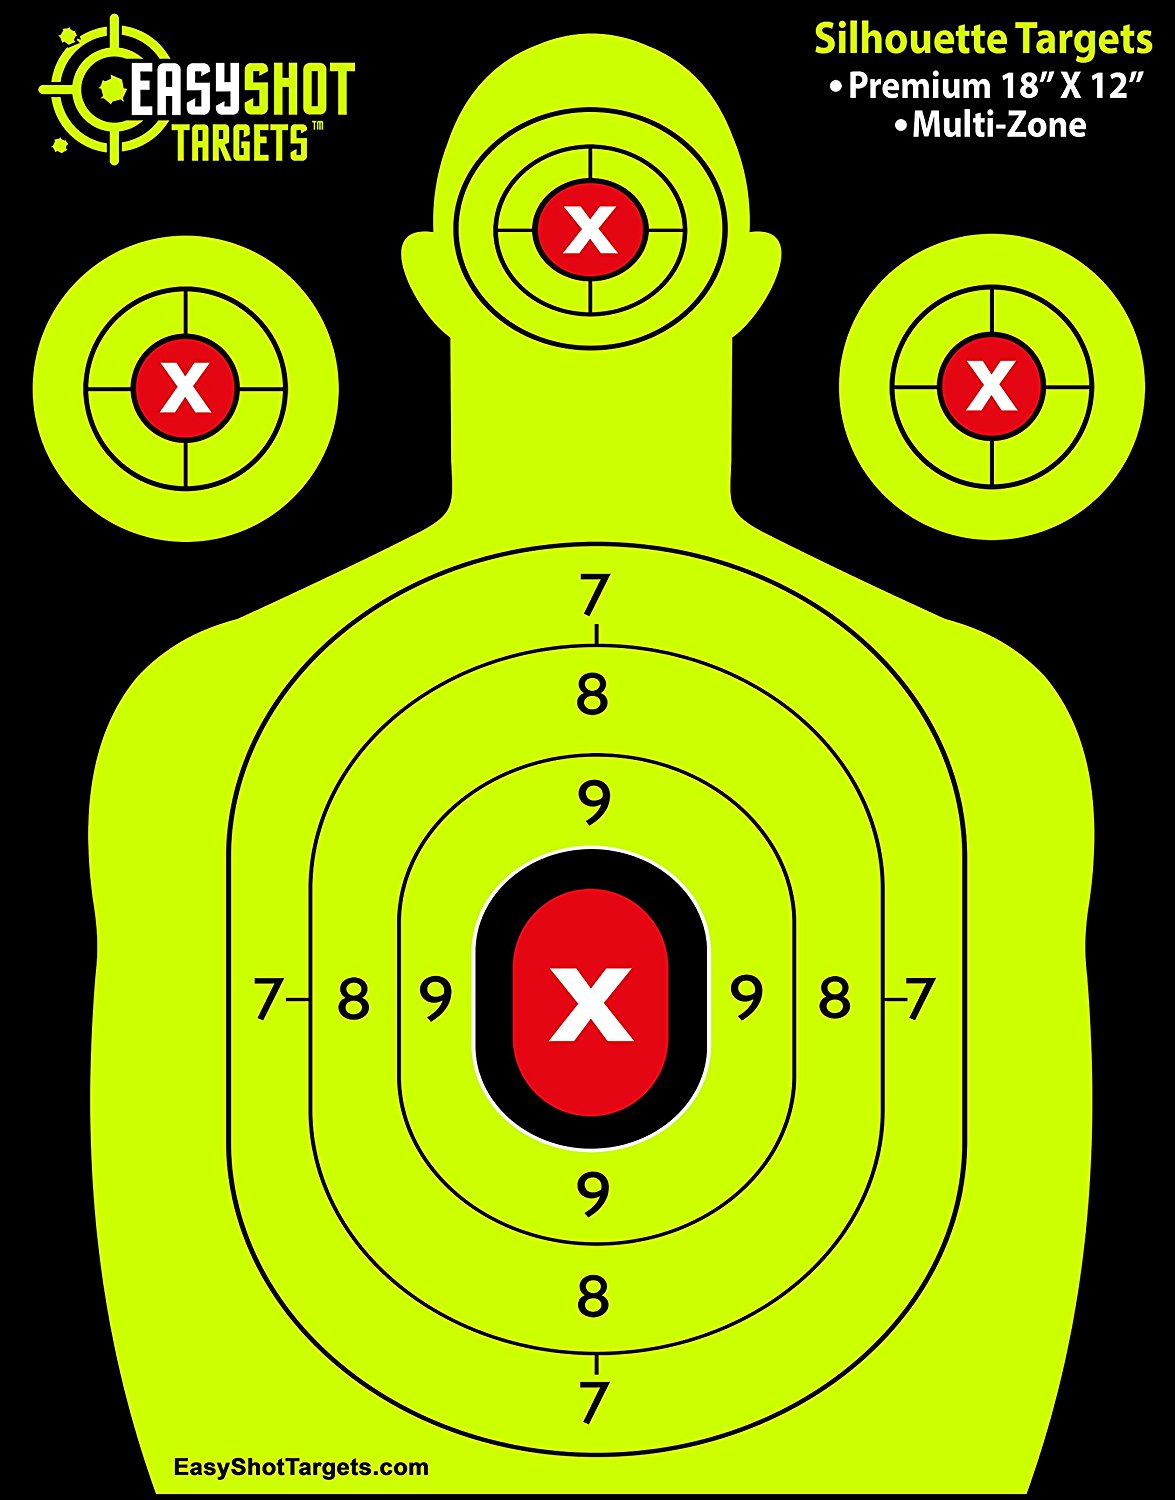 """200-PACK"" SHOOTING TARGETS BULK - High-Contrasting Green & Red Colors Make it Easy to See Your Shots Land - Heavy-Grade Silhouette Paper Sheets - 150 Free Repair DOTS & EBOOK - Best Value Gun Targets"